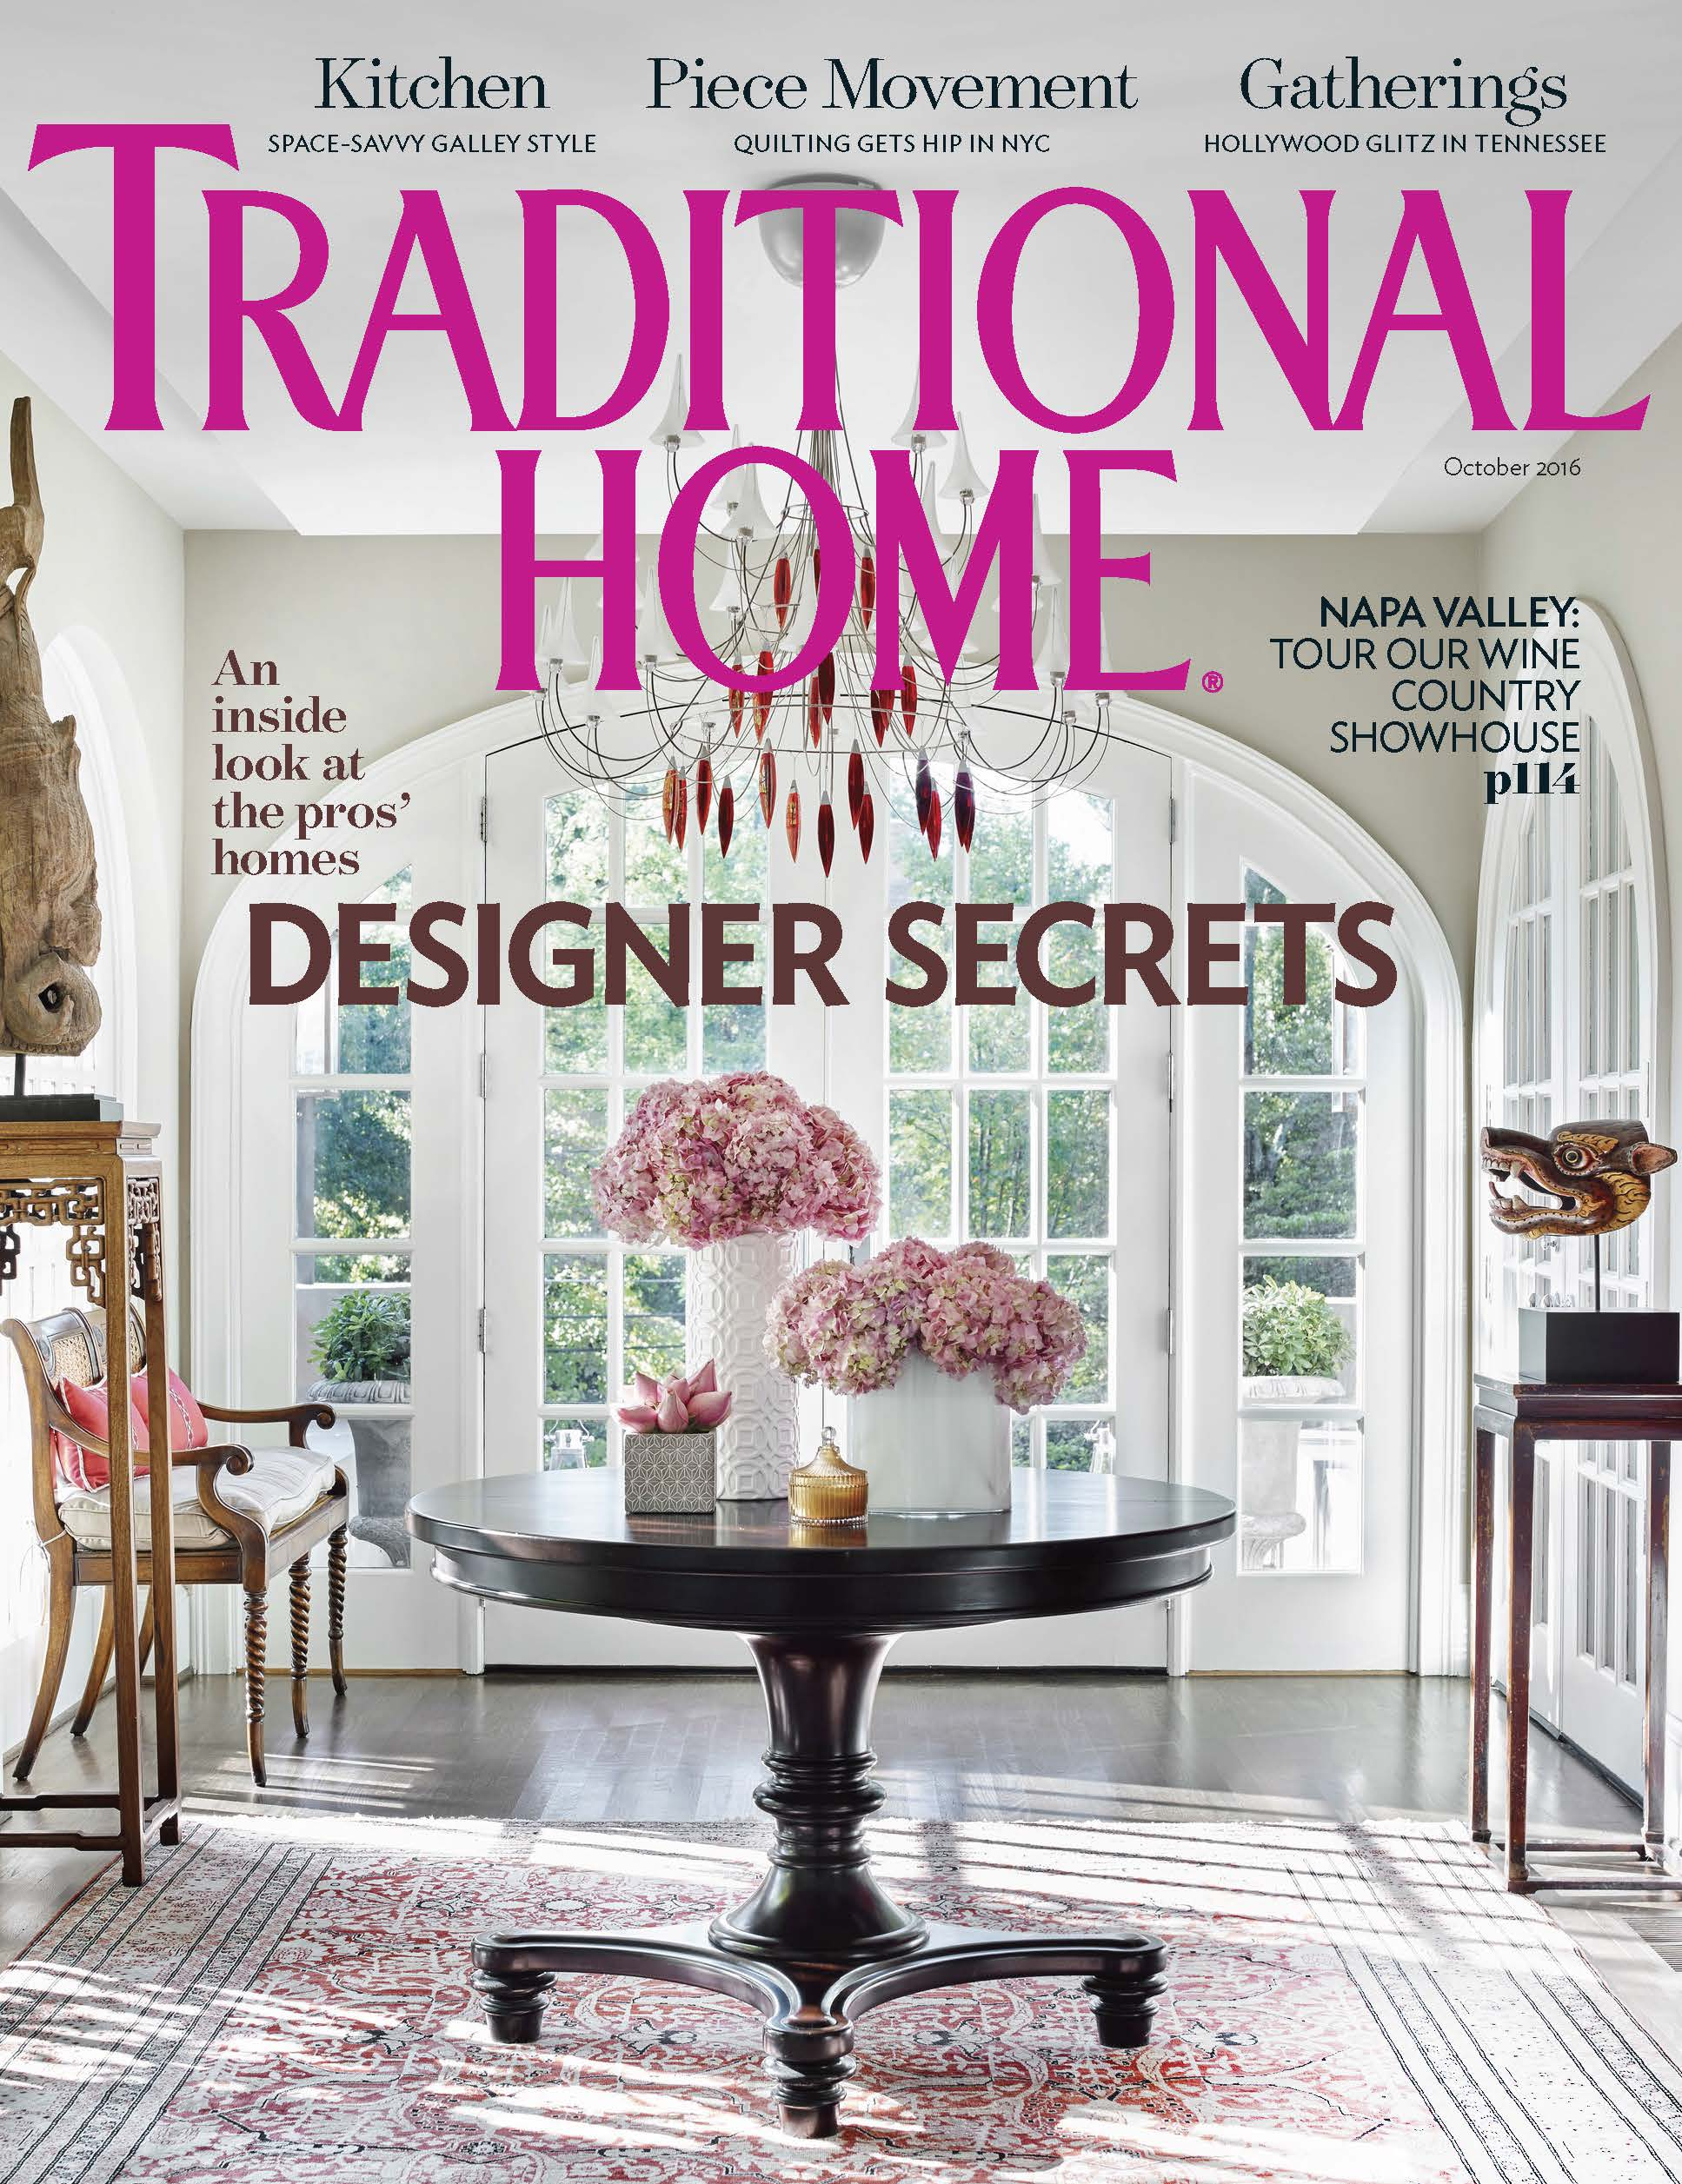 Traditional Home_Romo_October 2016_Cover.jpg